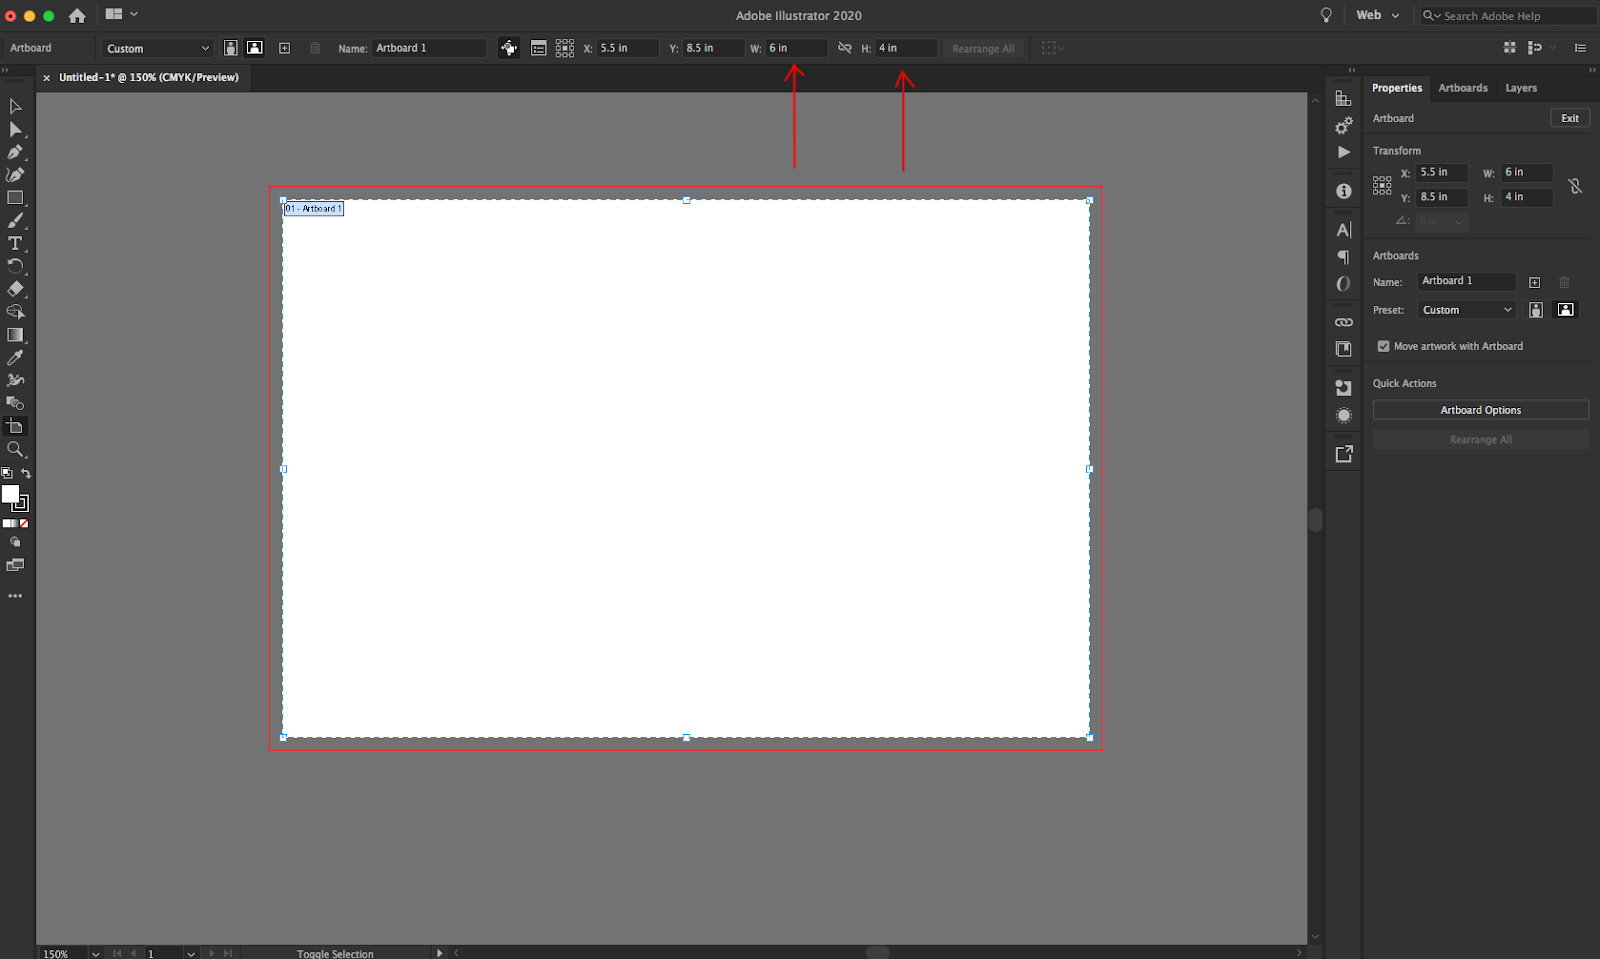 Image showing how to set artboard in Adobe Illustrator.